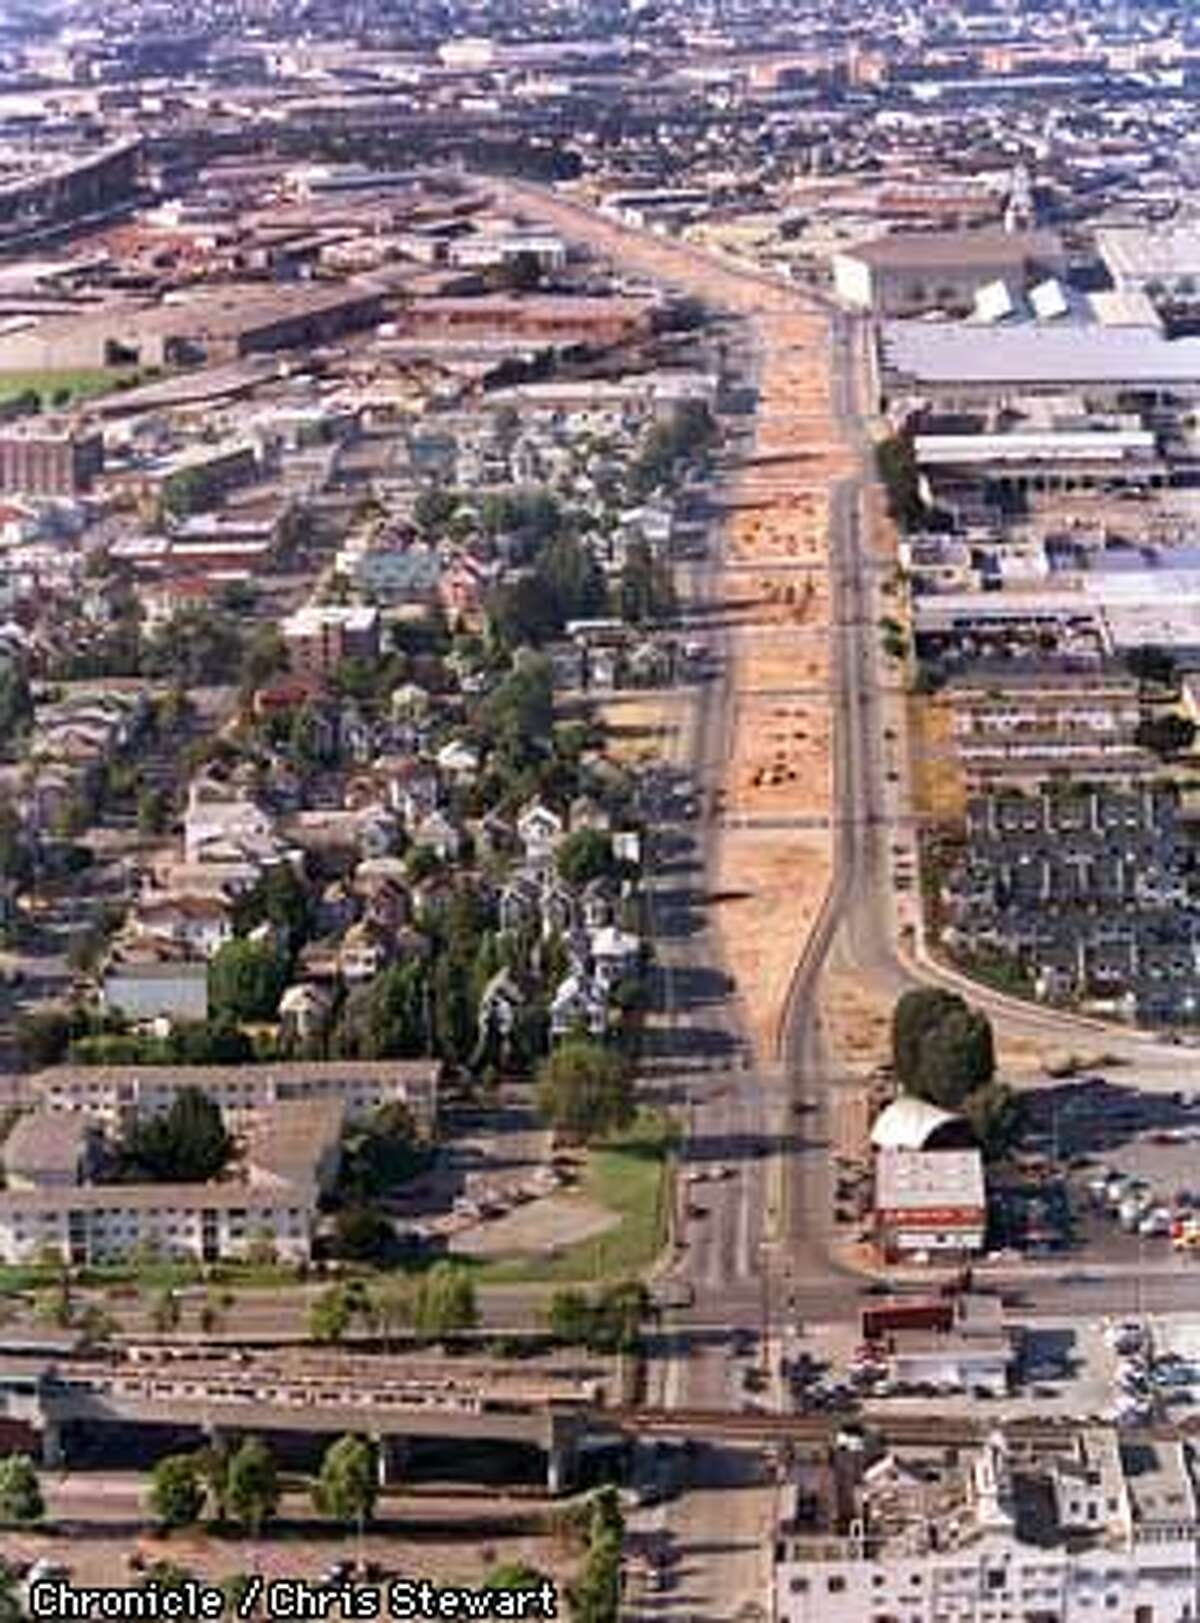 Long after the Cypress freeway structure in West Oakland was torn down following its destruction in the 1989 Loma Prieta earthquake, the ground level Mandela Parkway which replaced the Cypress remains a brown scar of unlandscaped dirt. A major portion of the rebuilt Cypress freeway should open within a month. SAN FRANCISCO CHRONICLE PHOTO BY CHRIS STEWART